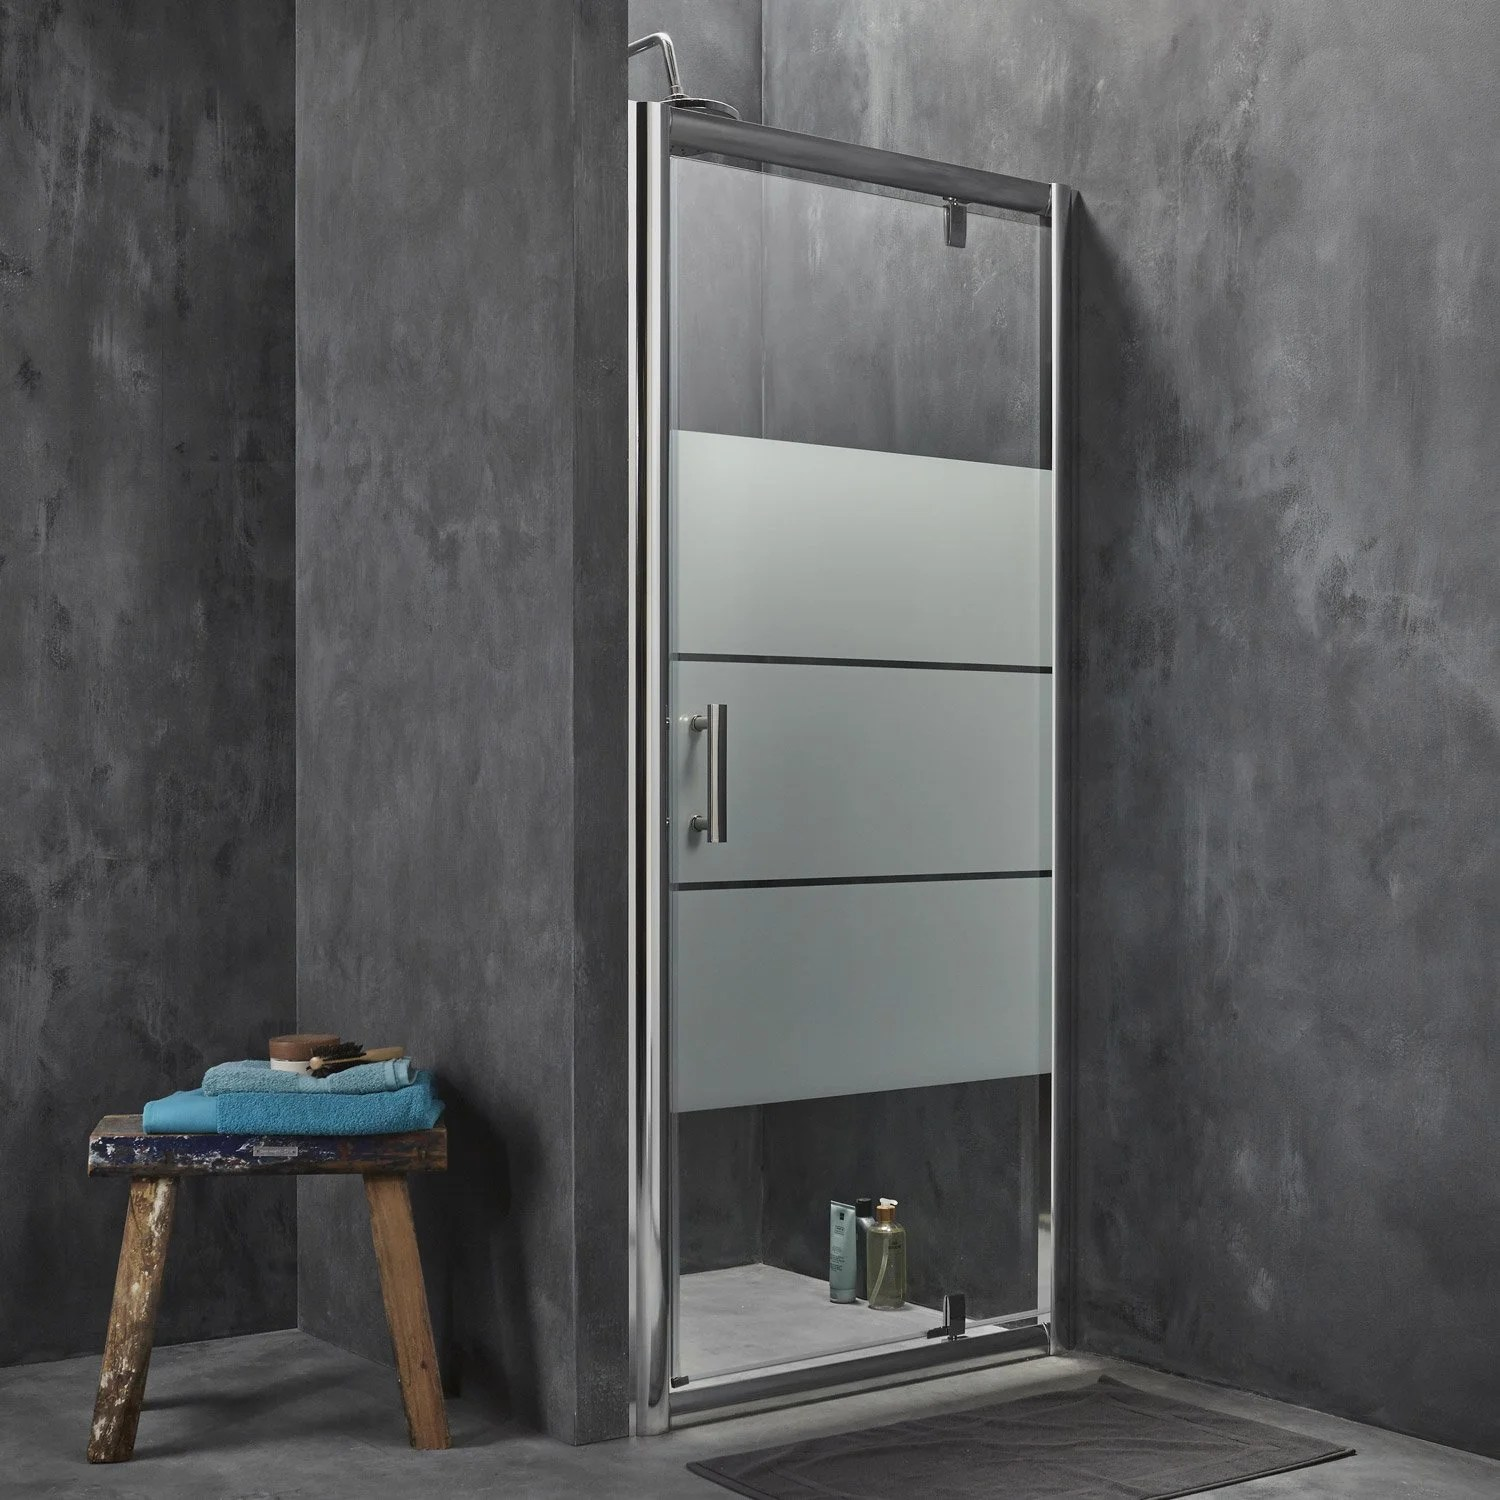 Leroy Merlin Table Pliante Porte De Douche Pivotante Sensea Optima 2, Verre De